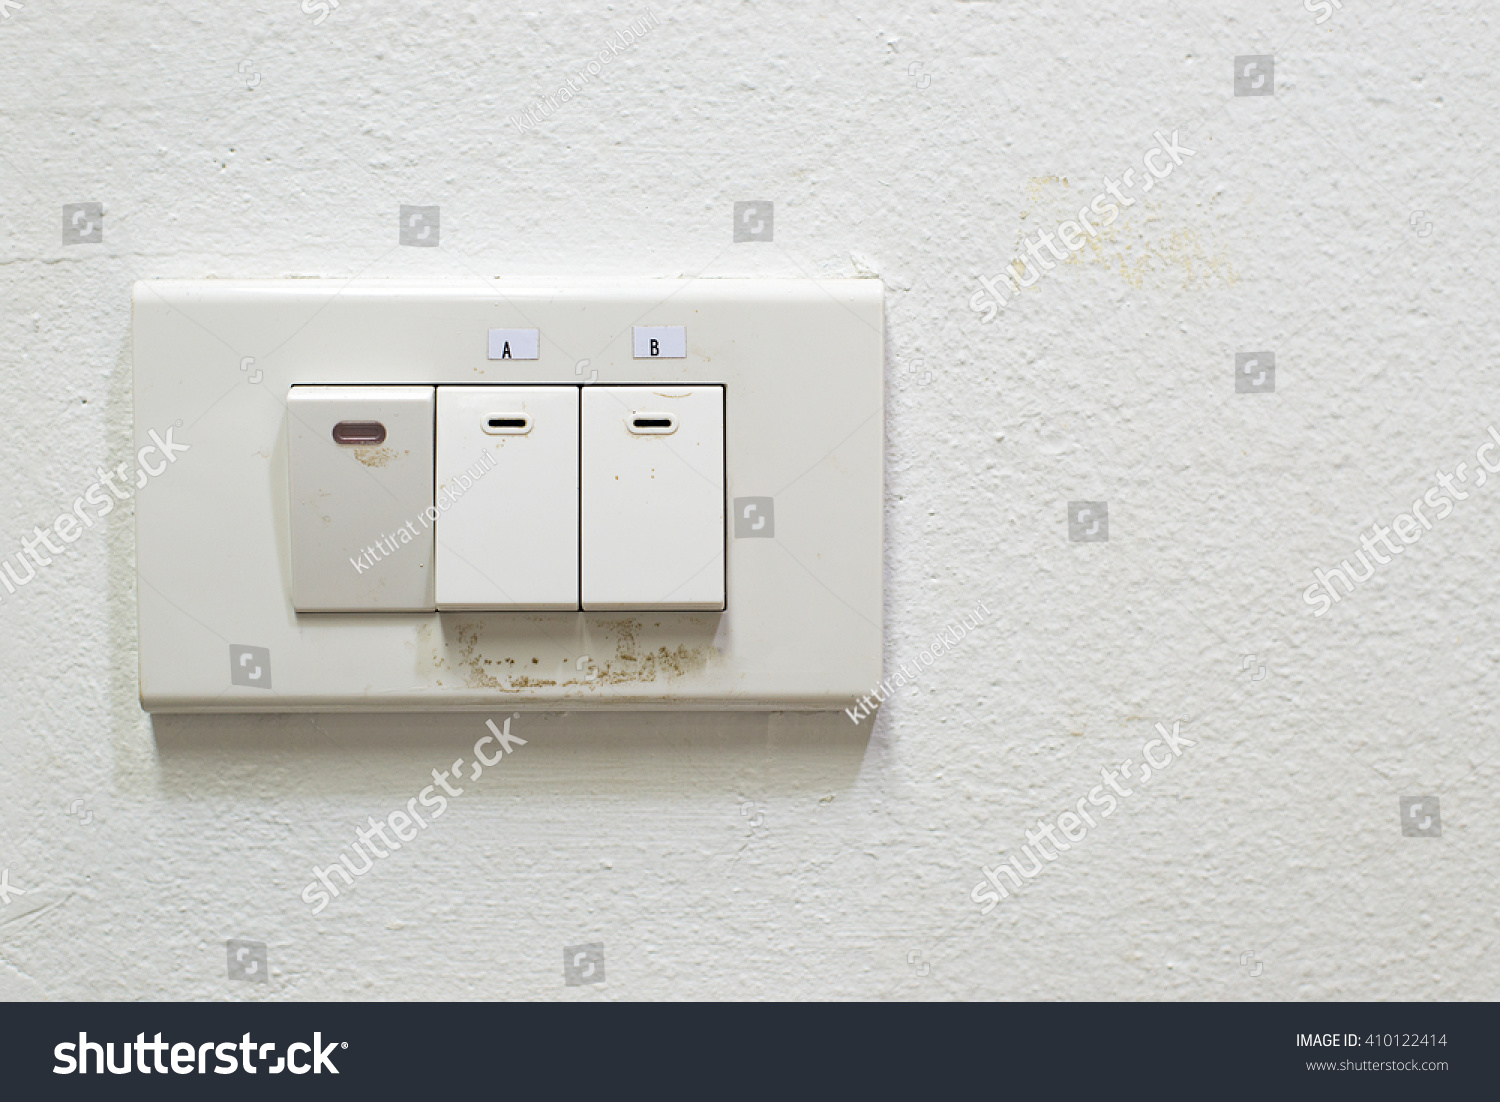 White light switch, turn on or turn off the lights | EZ Canvas